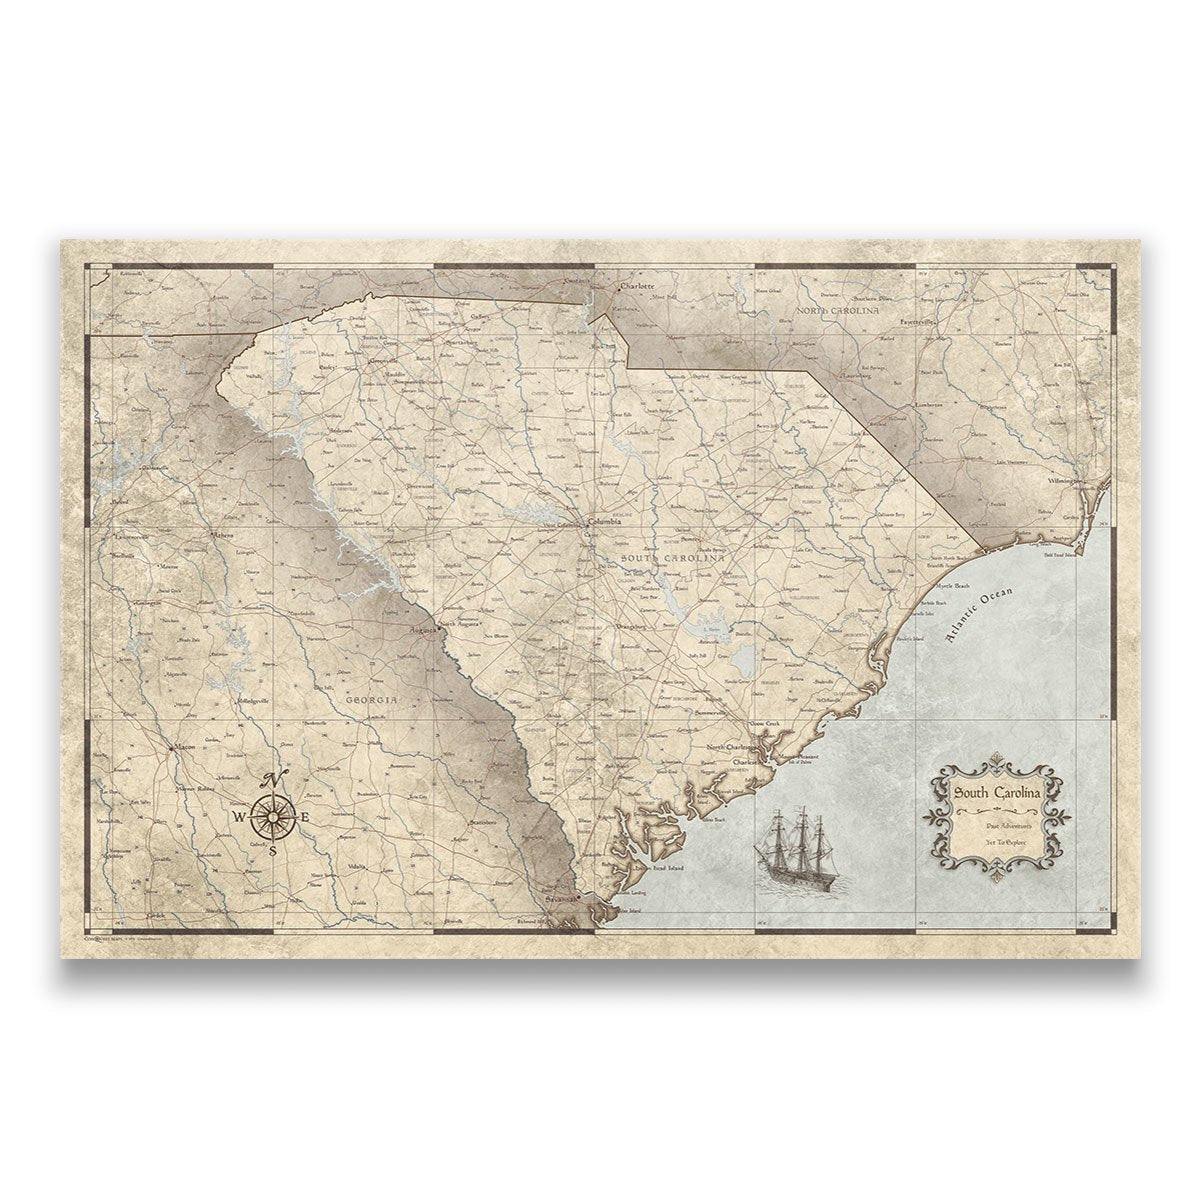 South Carolina Travel Map Pin Board with Push Pins: Rustic Vintage